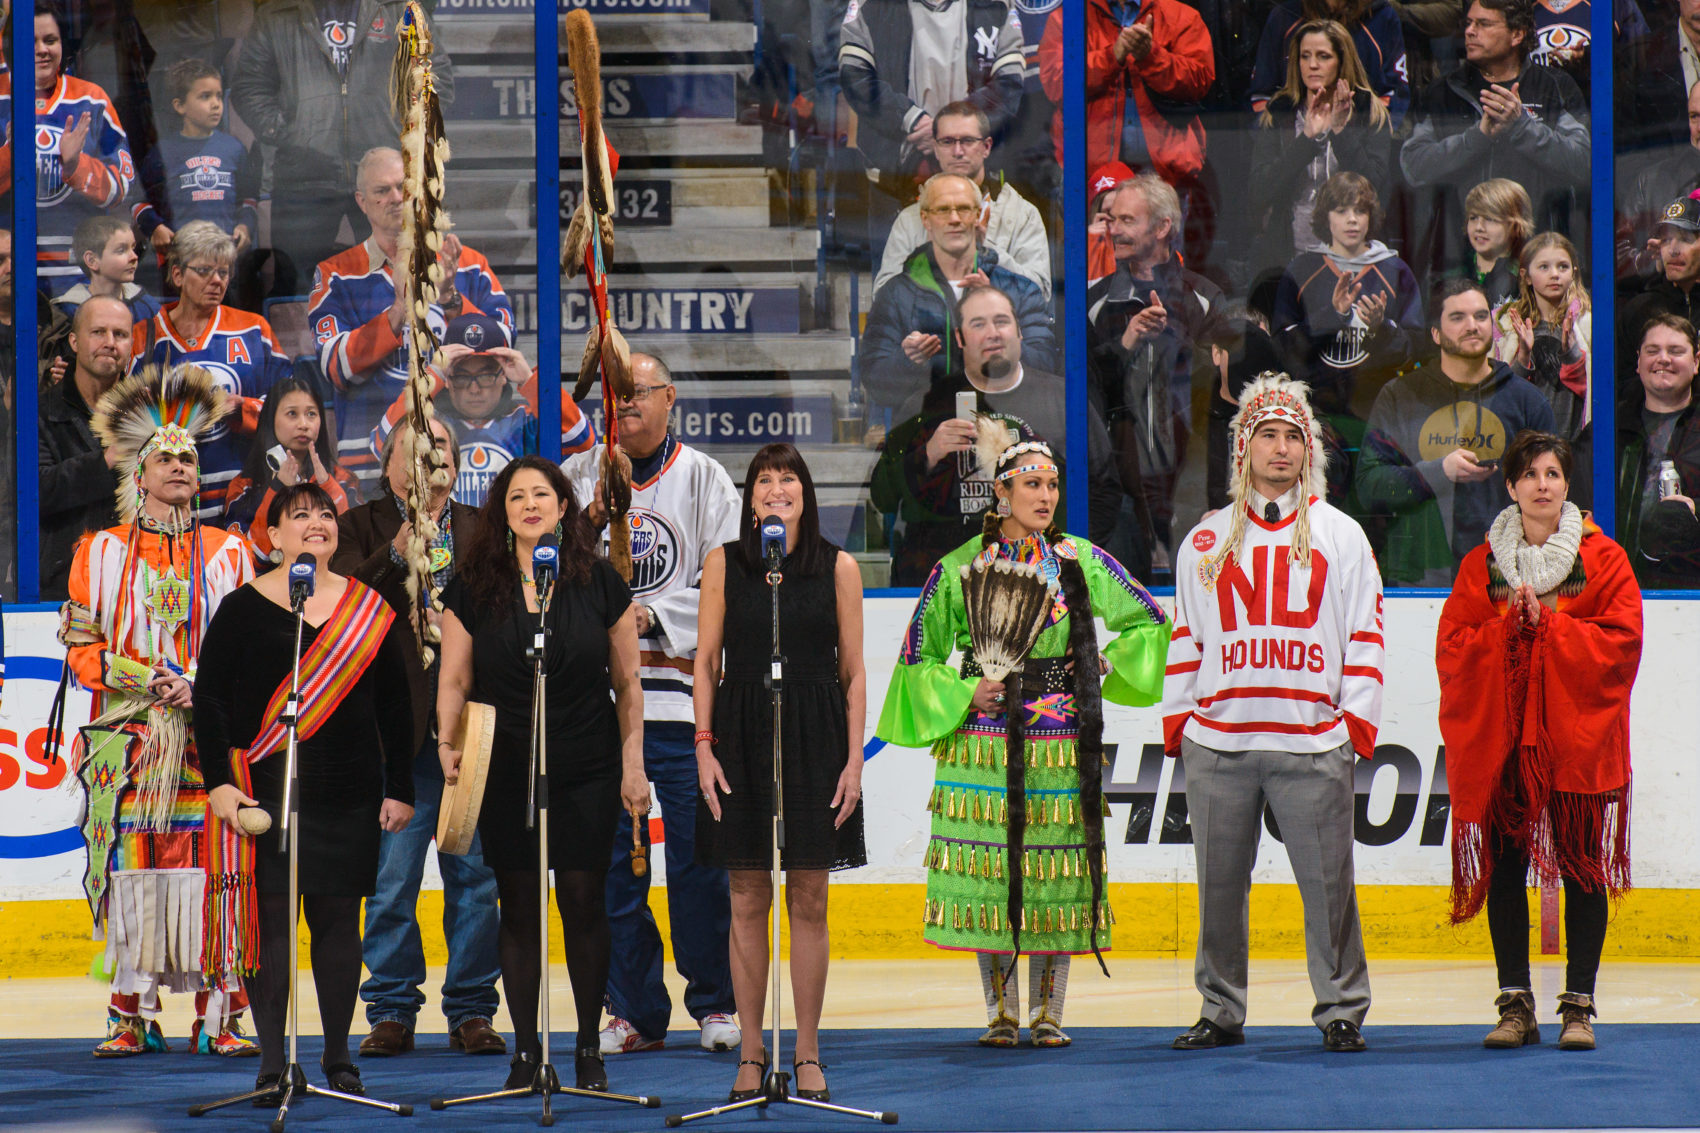 The Edmonton Oilers celebrate First Nations hockey at a 2014 game. (Derek Leung/Getty Images)